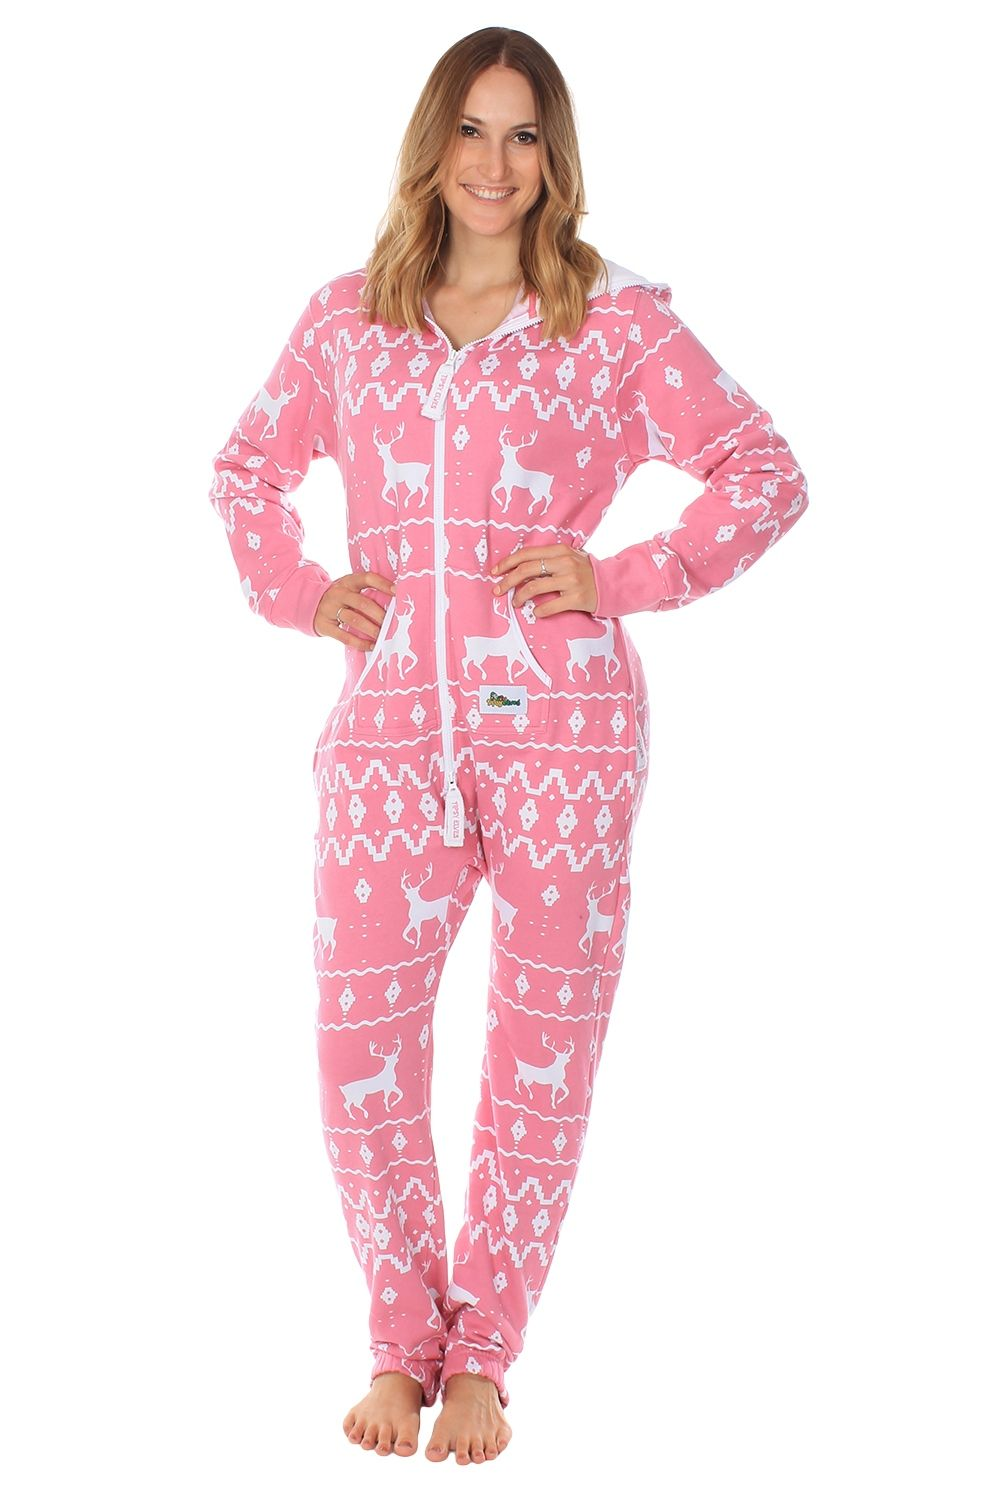 Matching Family Christmas Pajamas Sale